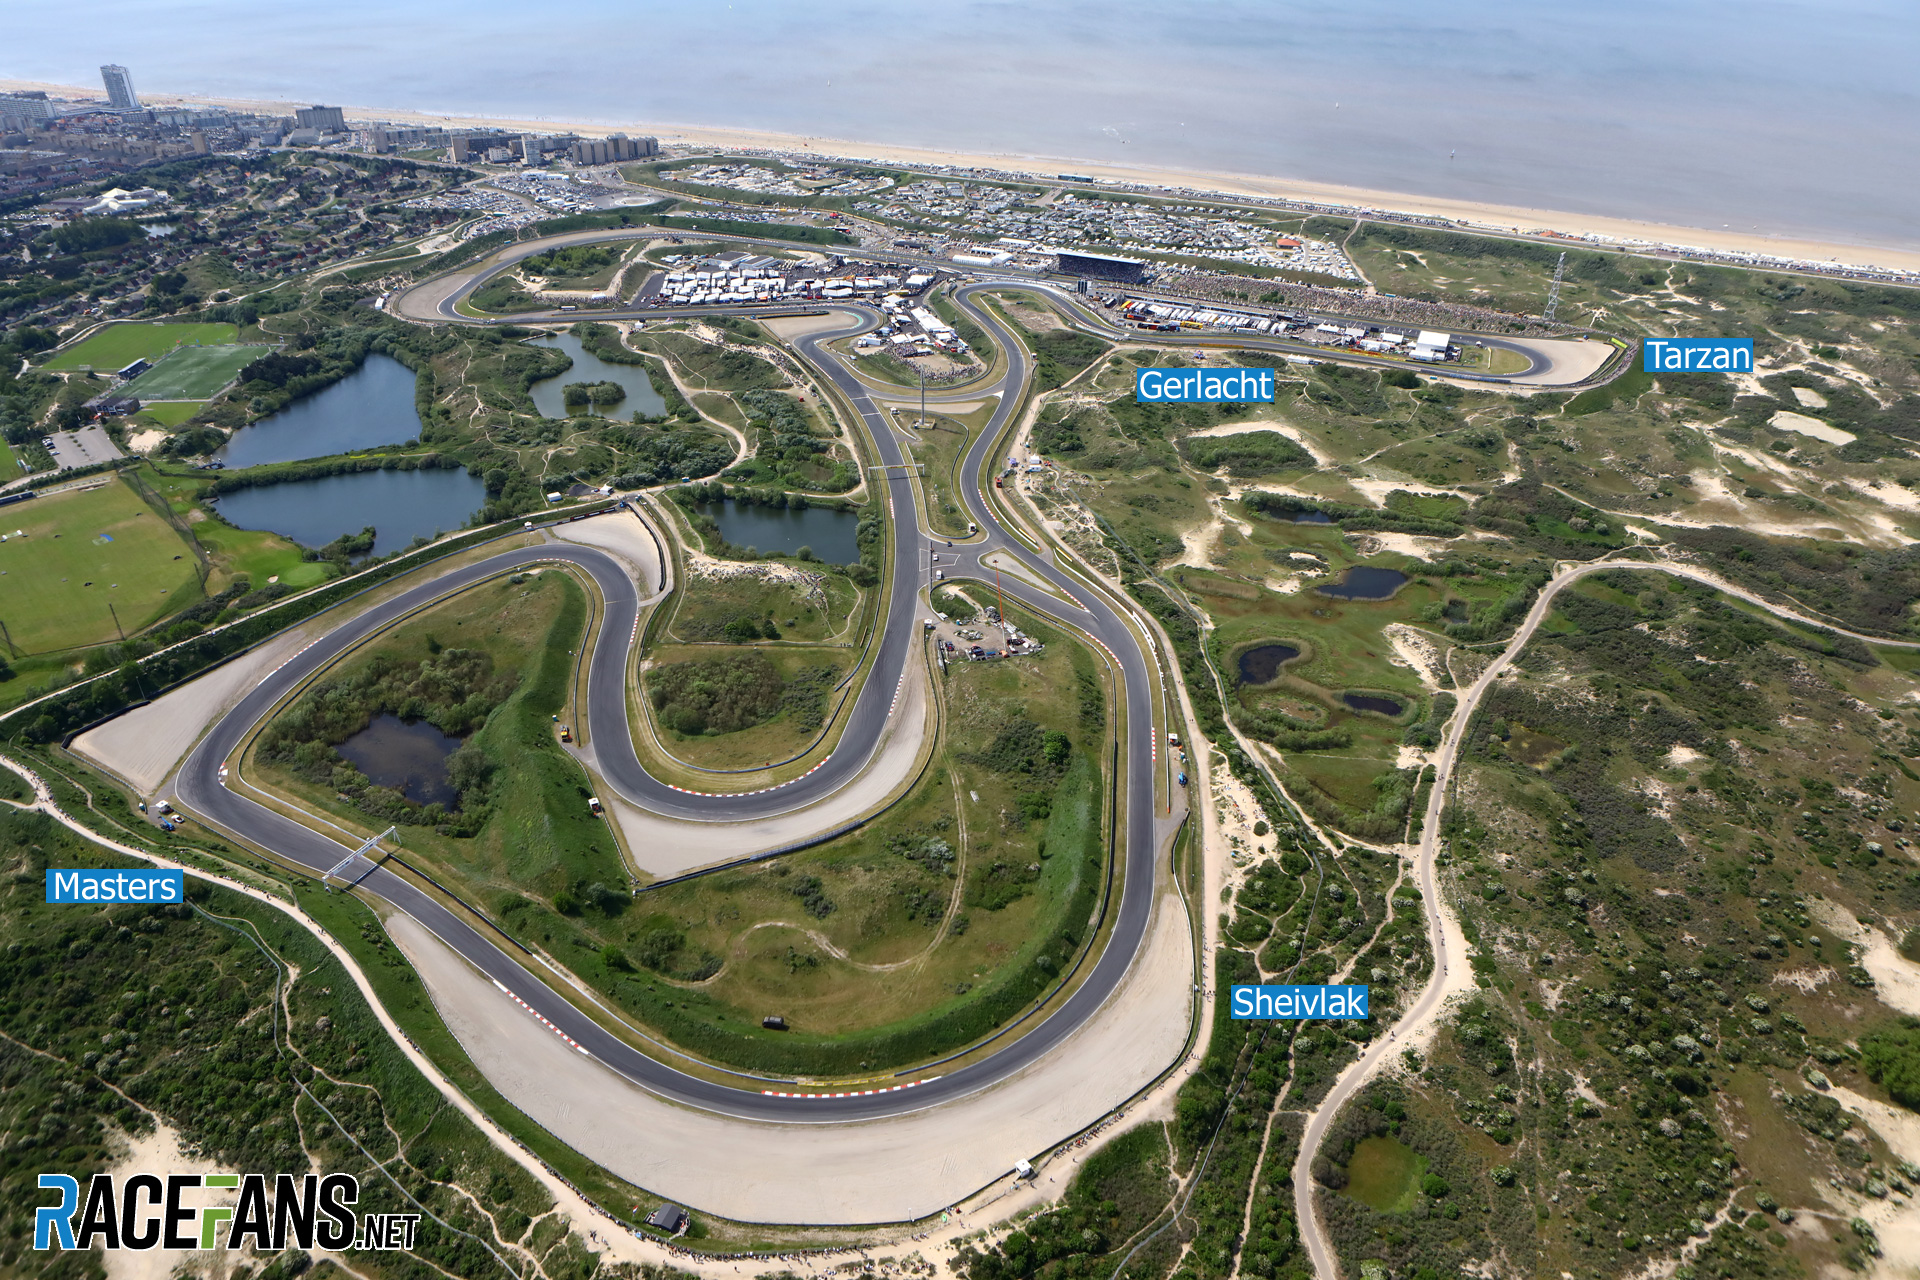 How Zandvoort Will Change To Host Its First F1 Race For 35 Years Racefans